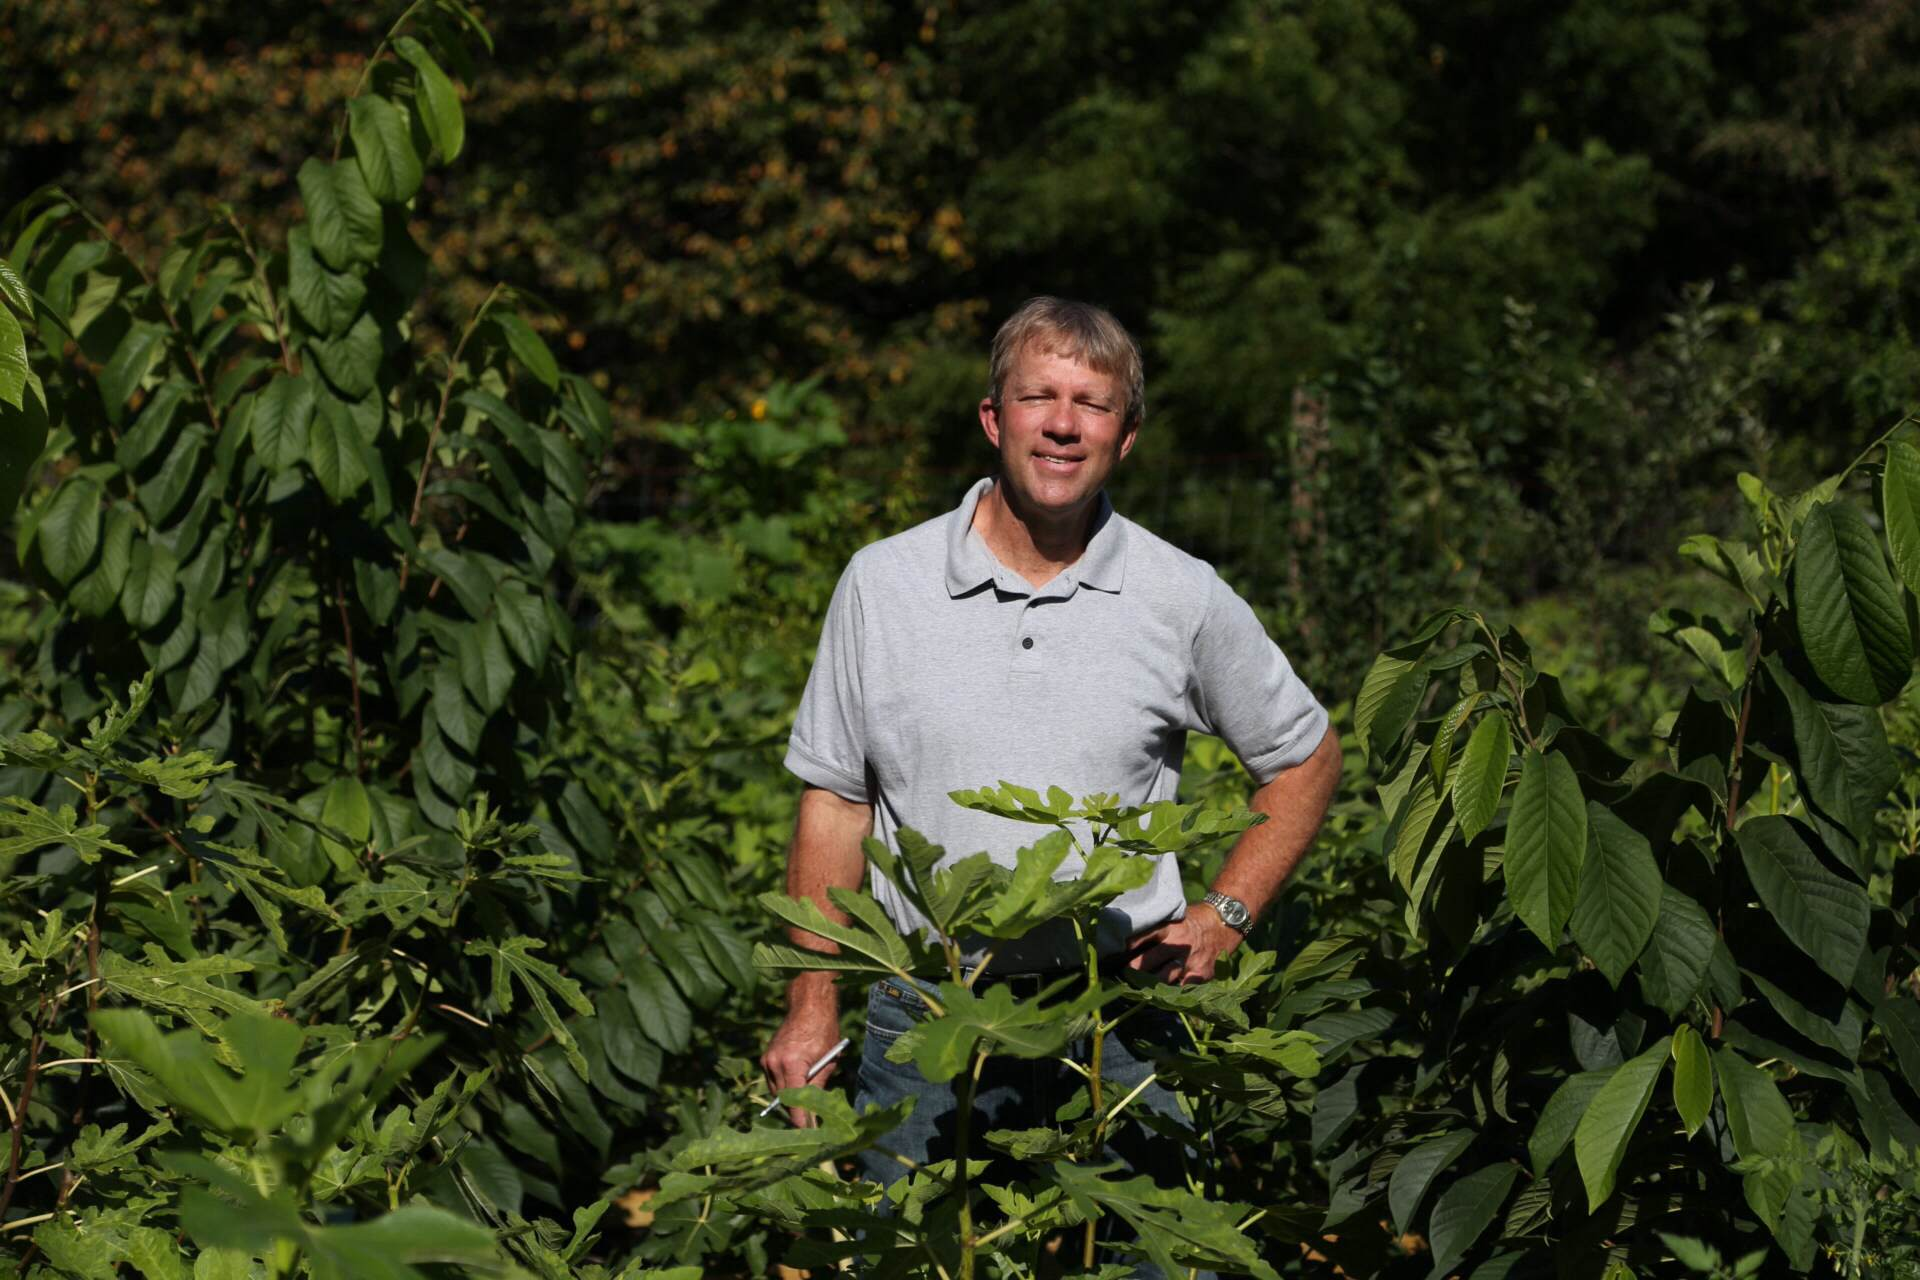 Garden guru George Weigel in amongst our potted figs and pawpaws